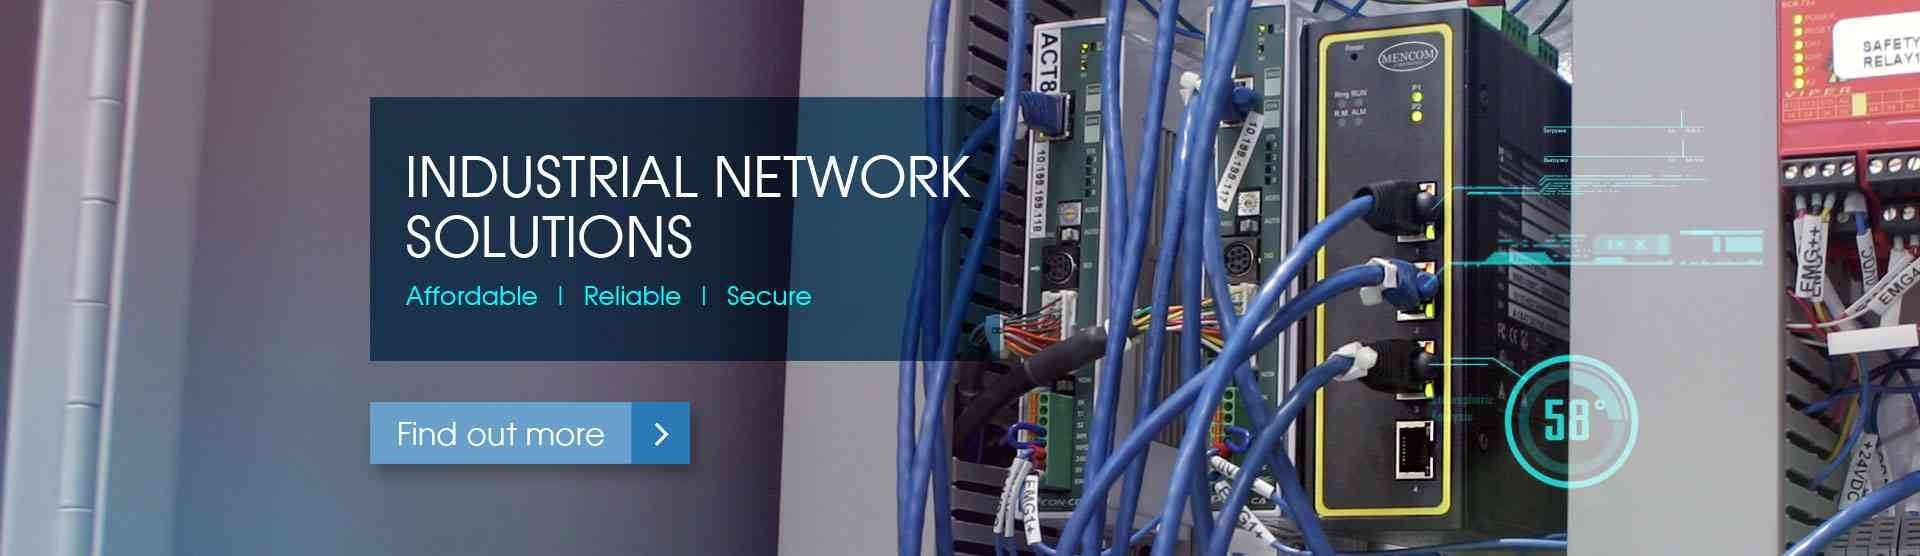 industrial-networking-solutions.html